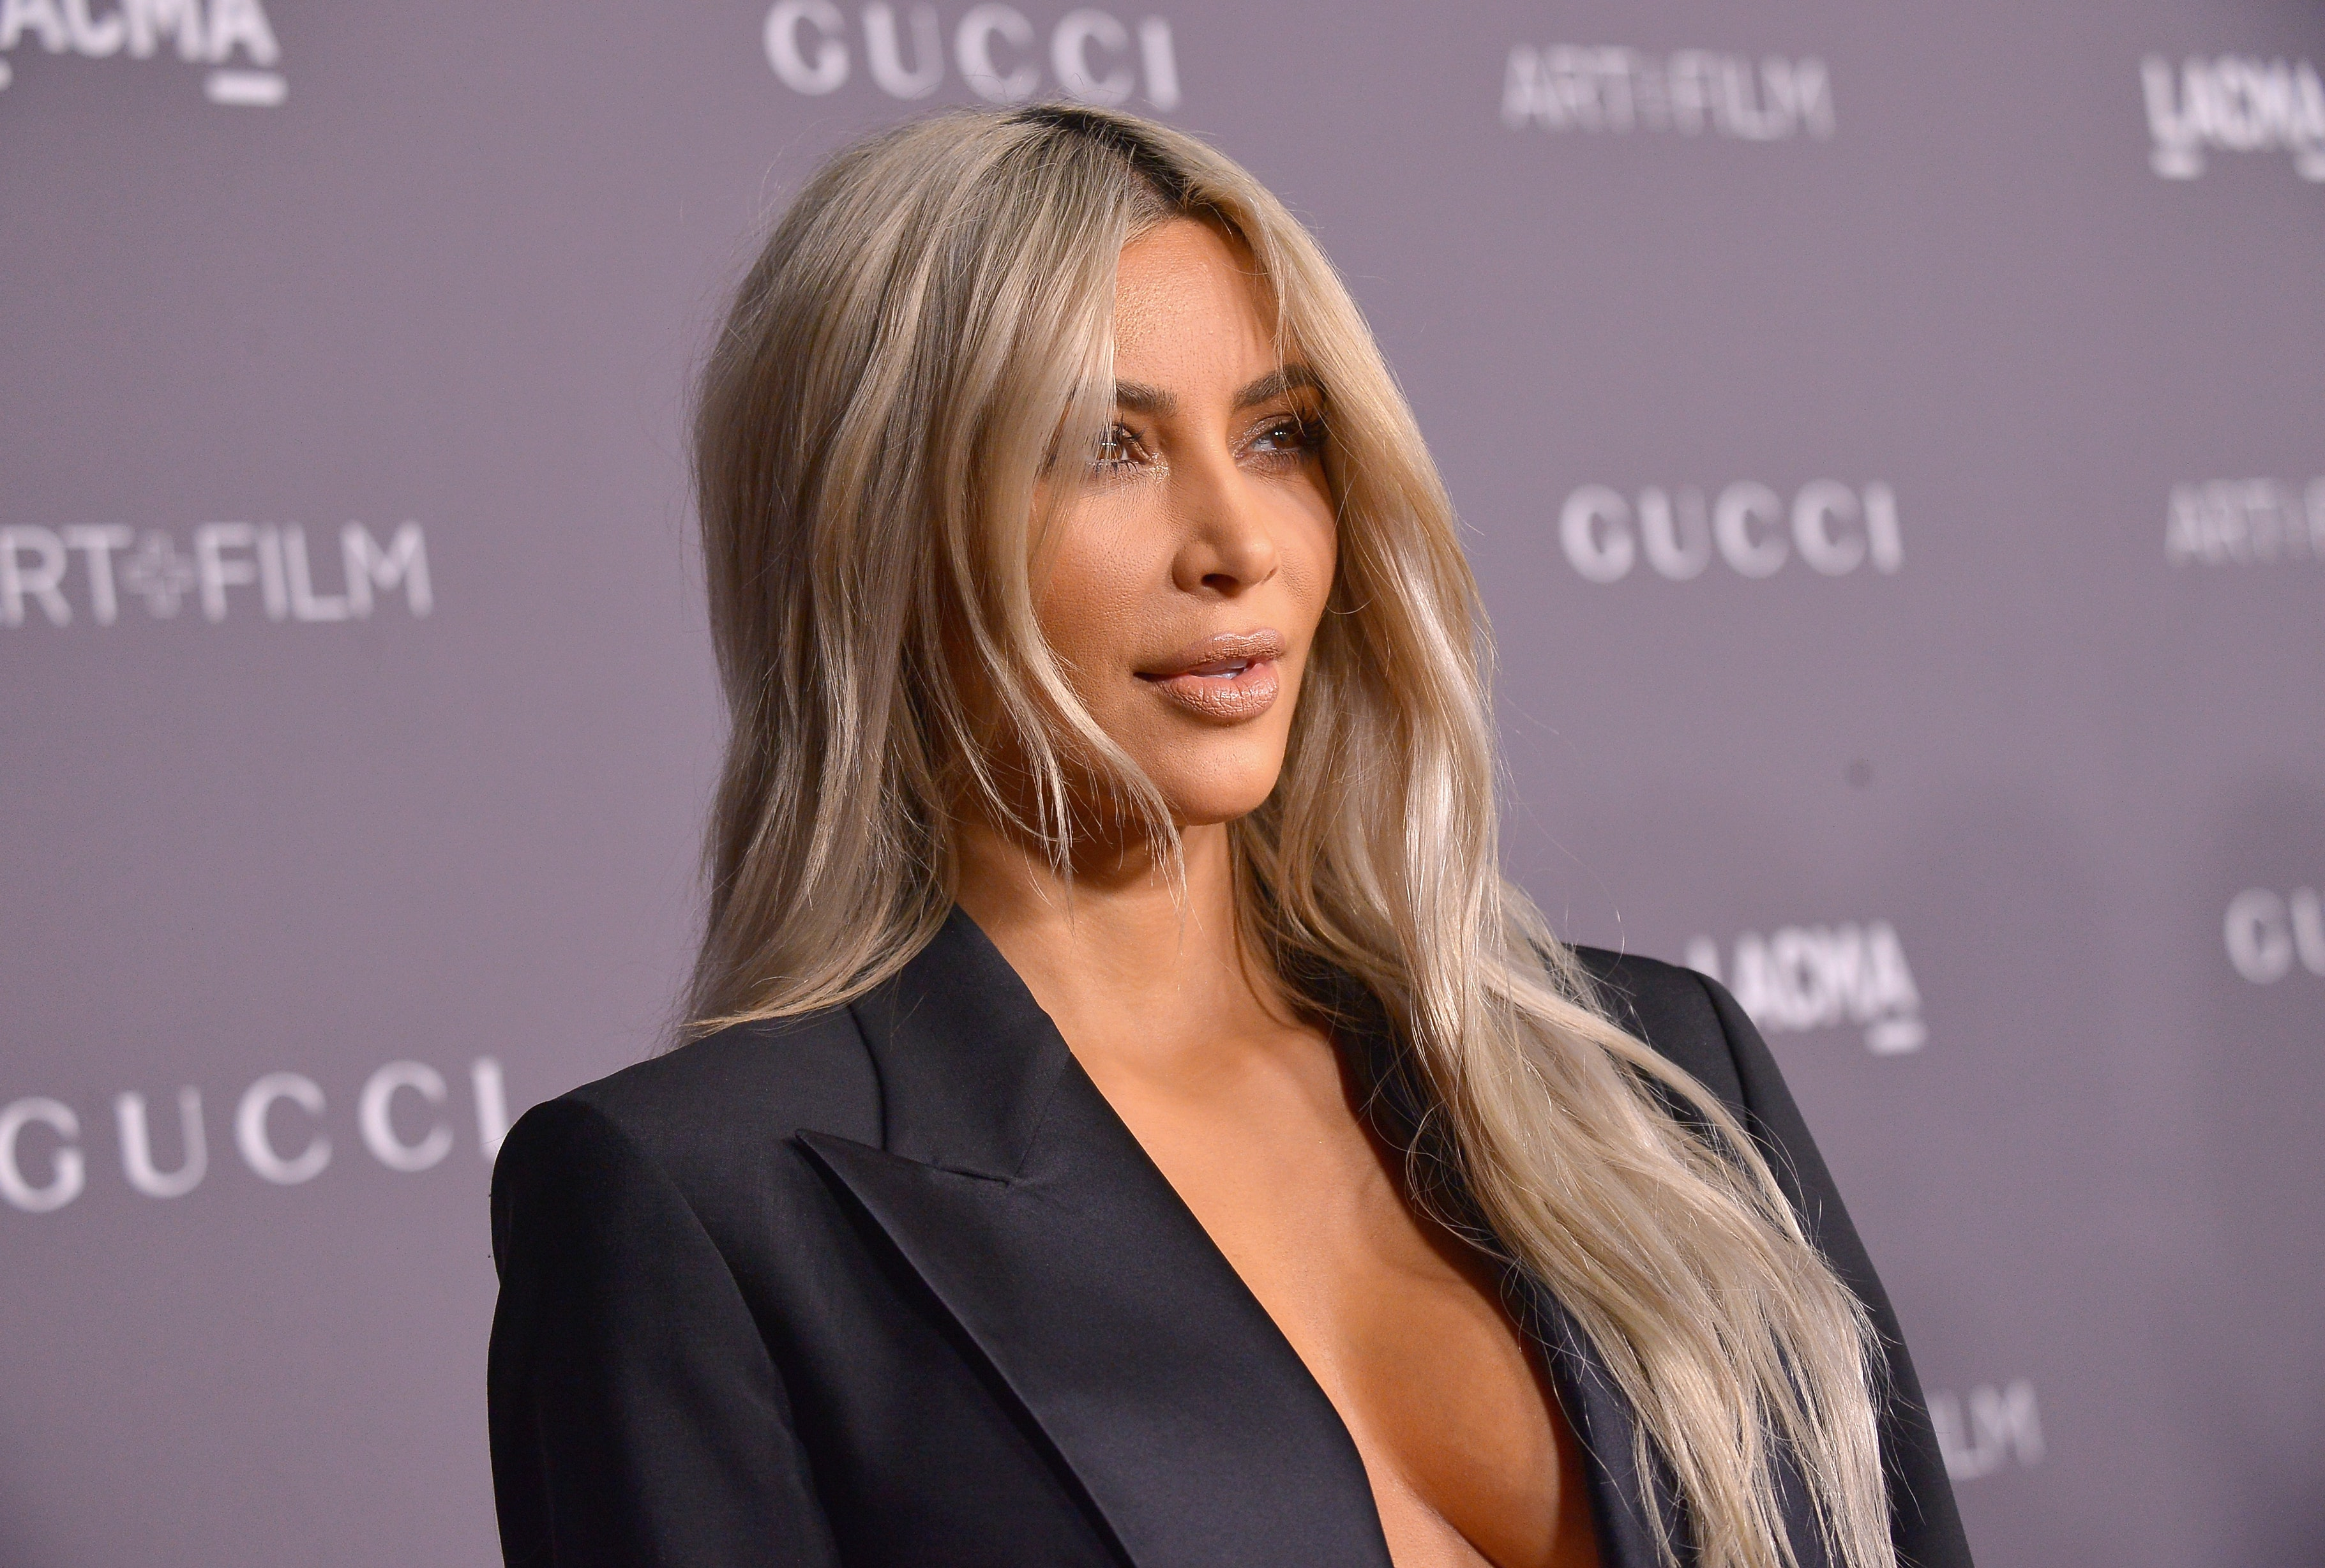 Kim Kardashian's New Perfume Sells $10 Million In One Day